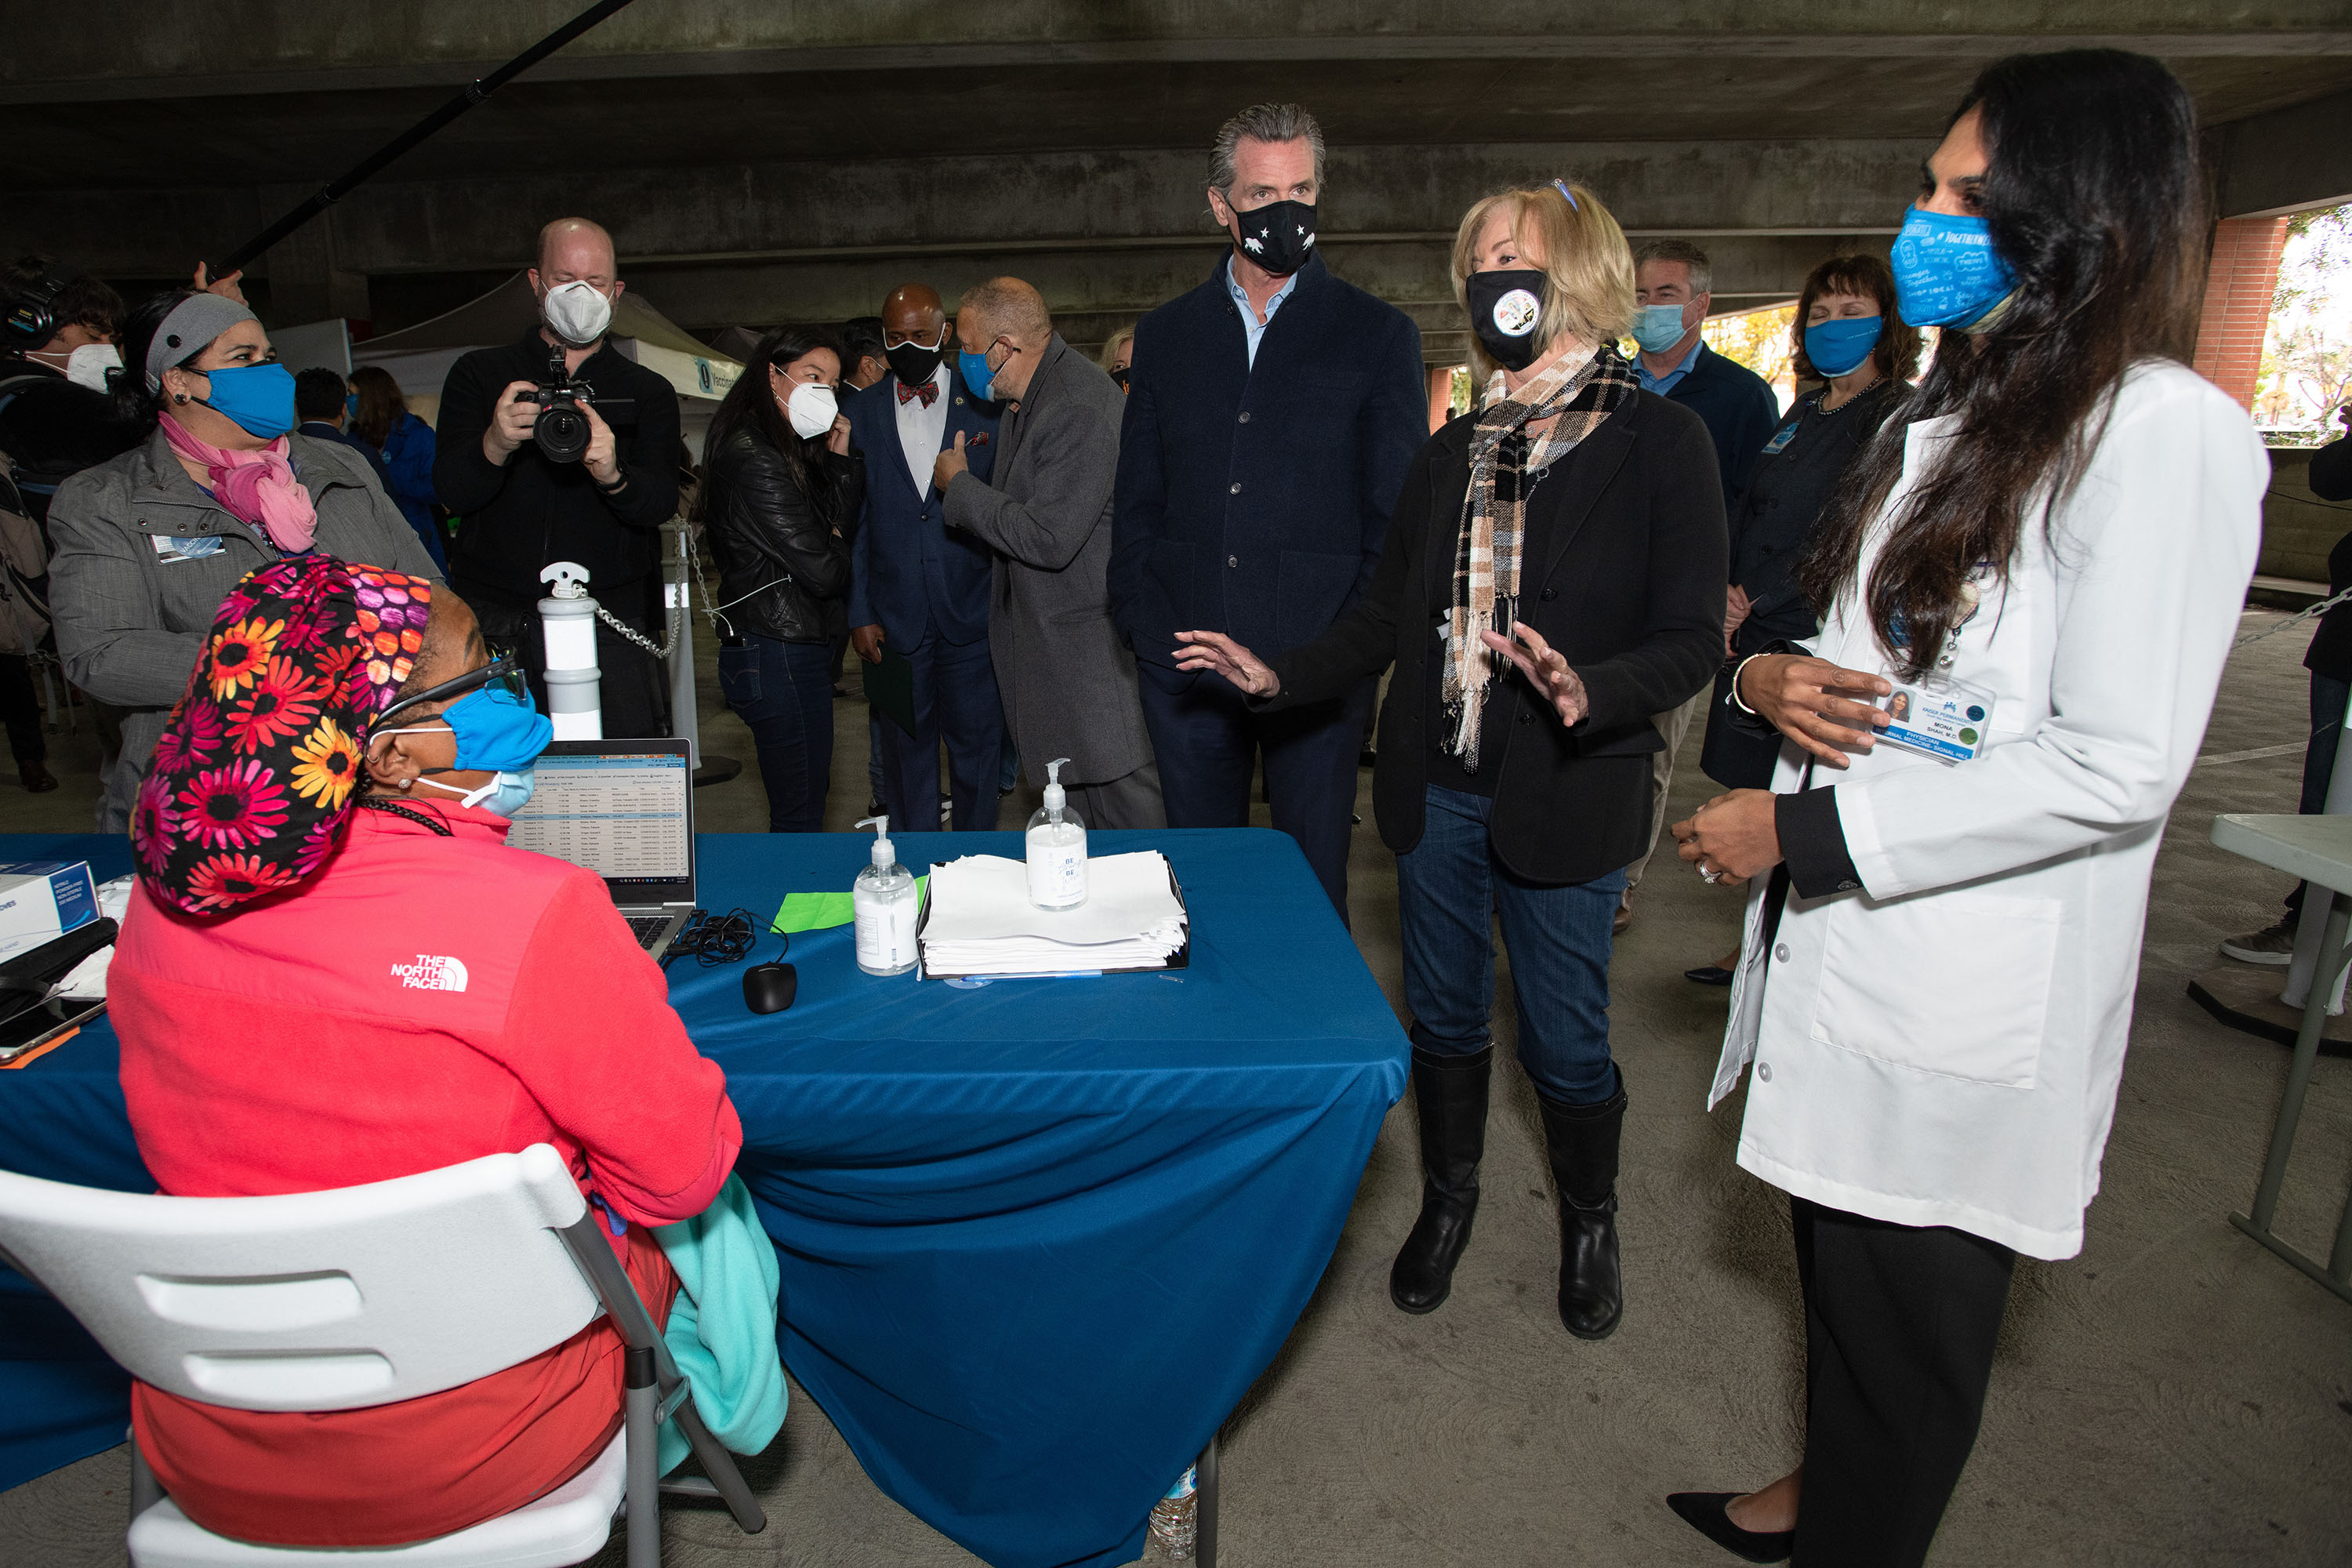 District 4 – Supervisor Janice Hahn<br> <b>March, 3, 2021 - Cal State Long Beach COVID-19 vaccination site</b><br> <i>Photo by Bryan Chan / Board of Supervisors</i>